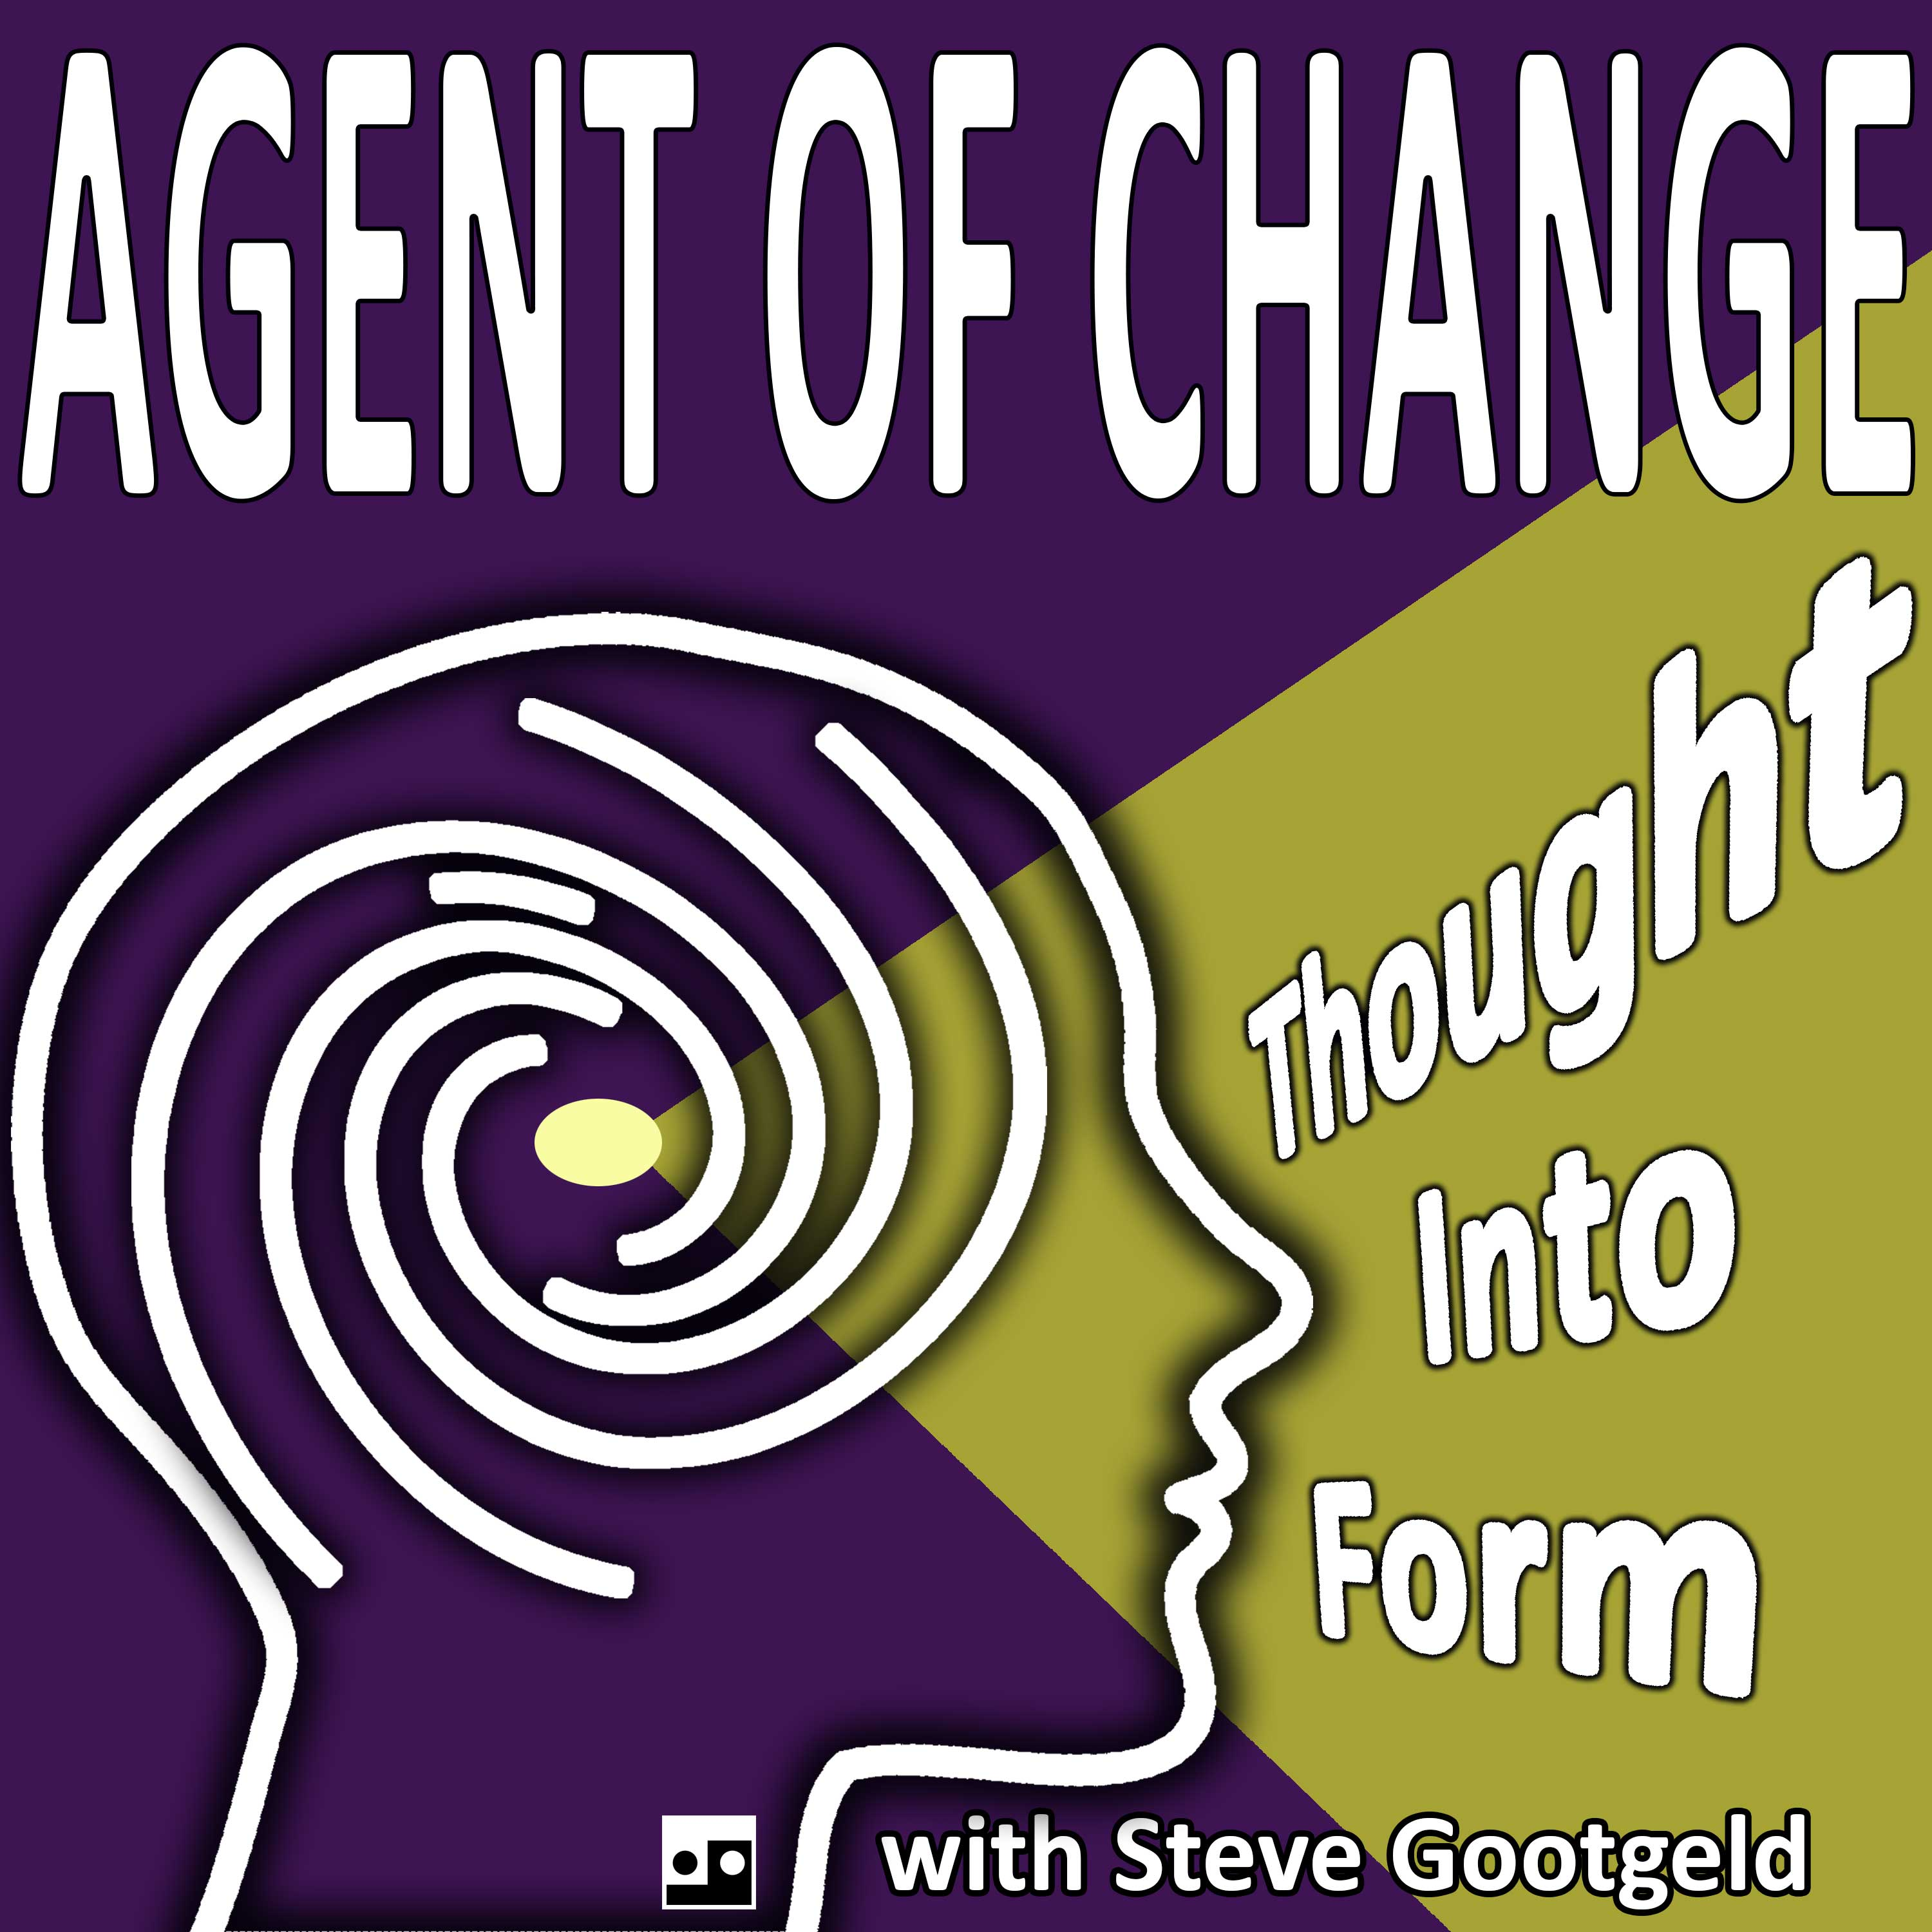 Agent of Change: Thought Into Form show art